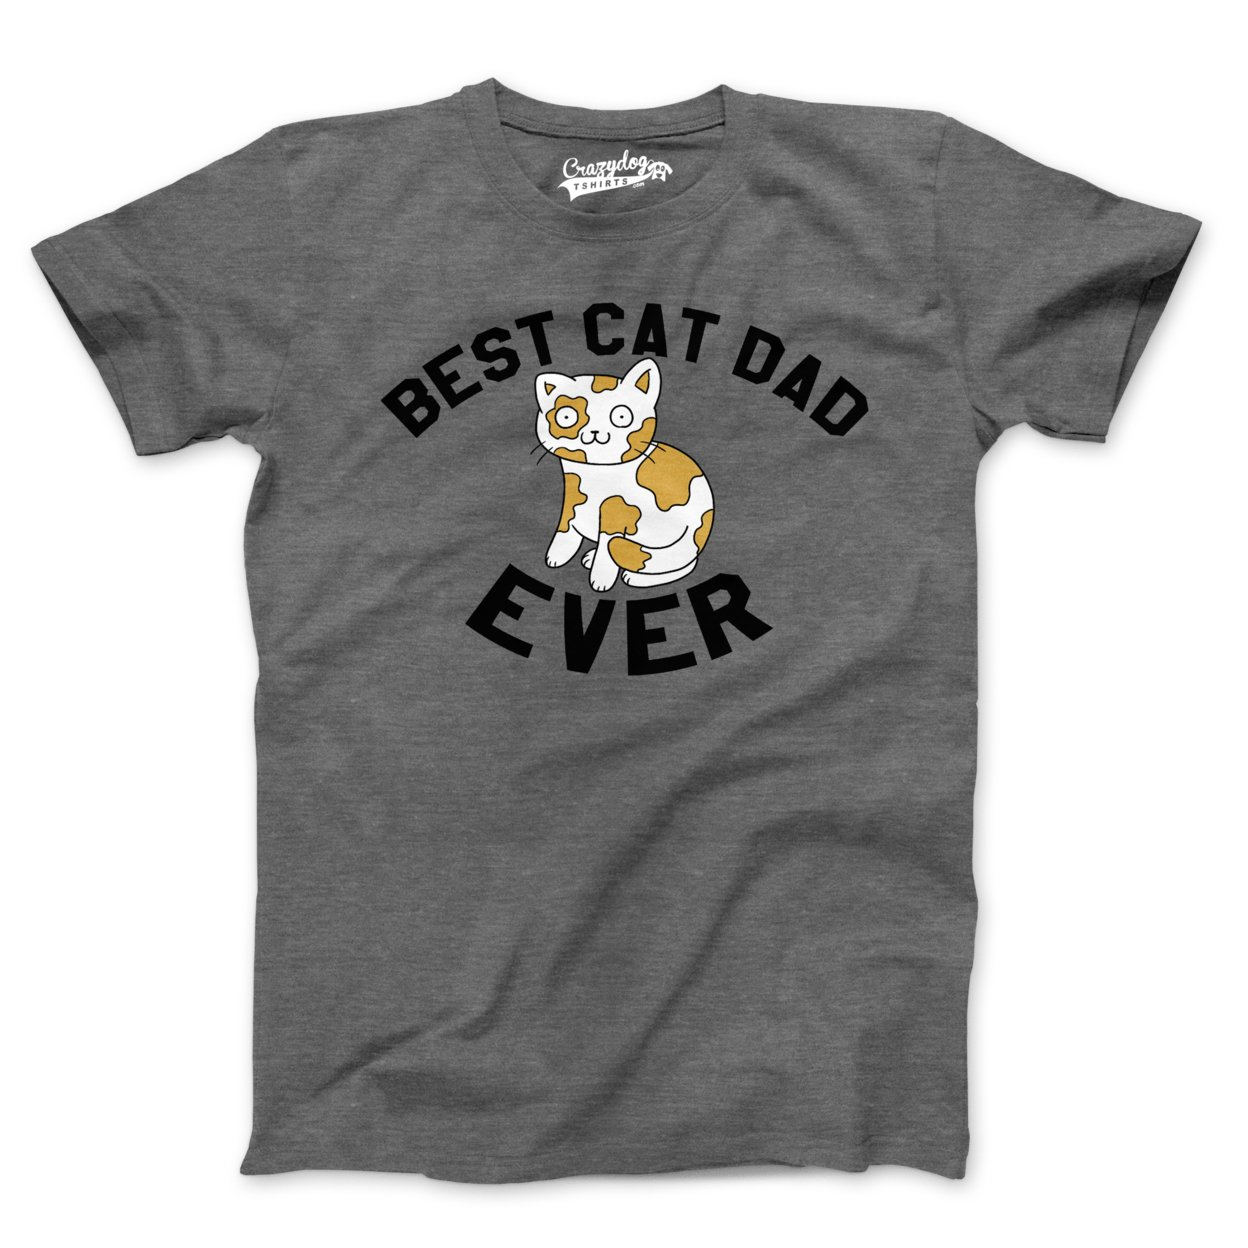 Best Cat Dad Ever T Shirt Fathers Day Funny Gift Mens Small